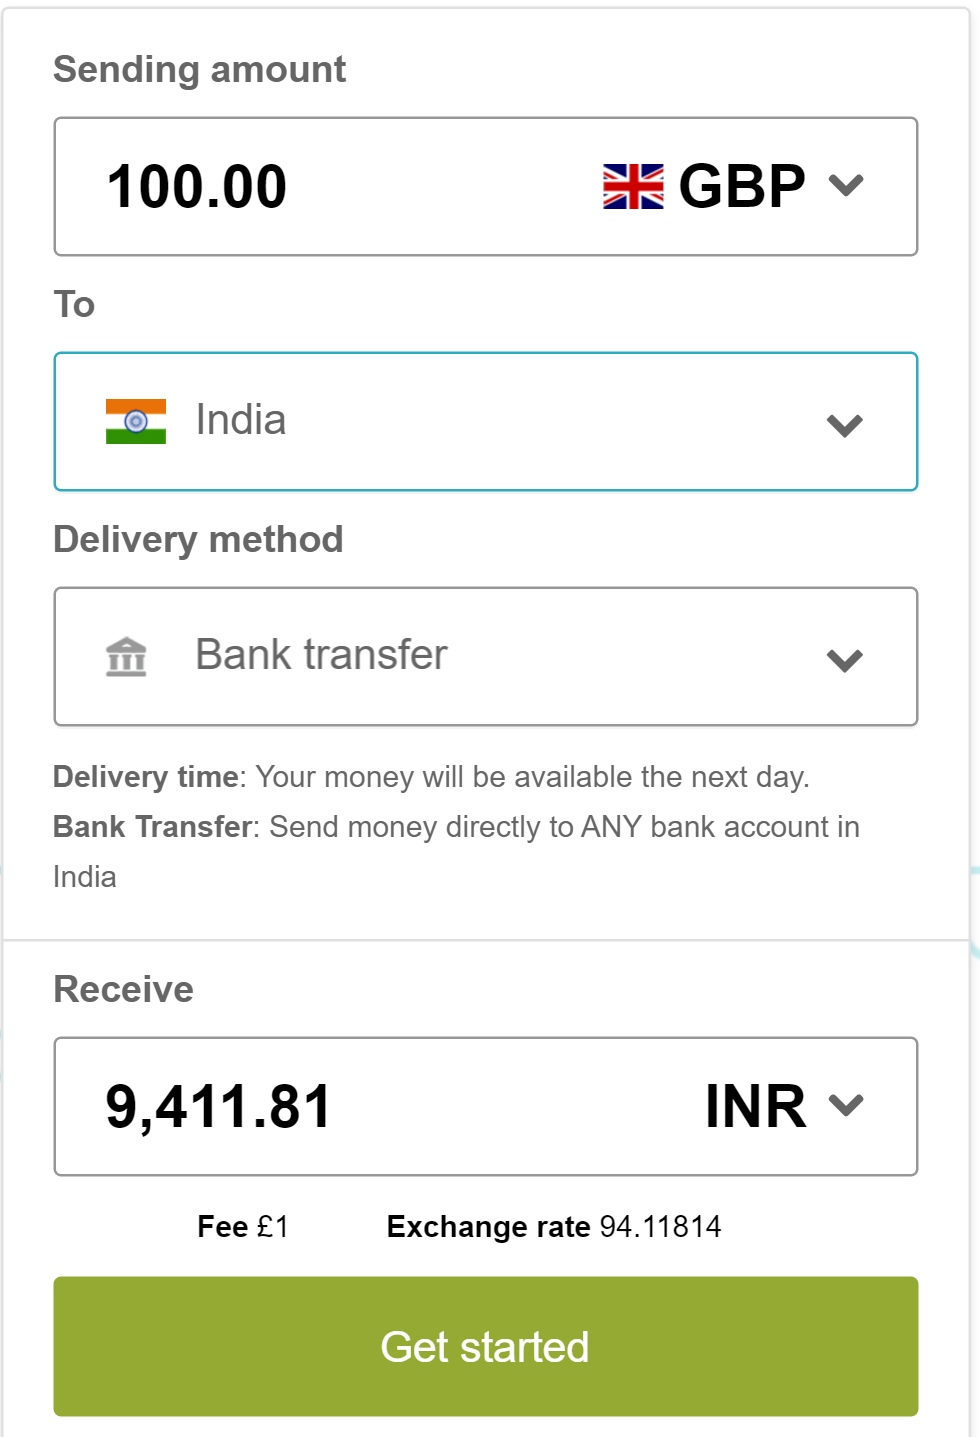 Money Transfer 5 Hacks To Nudge Consumers Wiring Cibc Comparison Of Western Union And Azimo Sending 100gbp From Uk India Via Bank